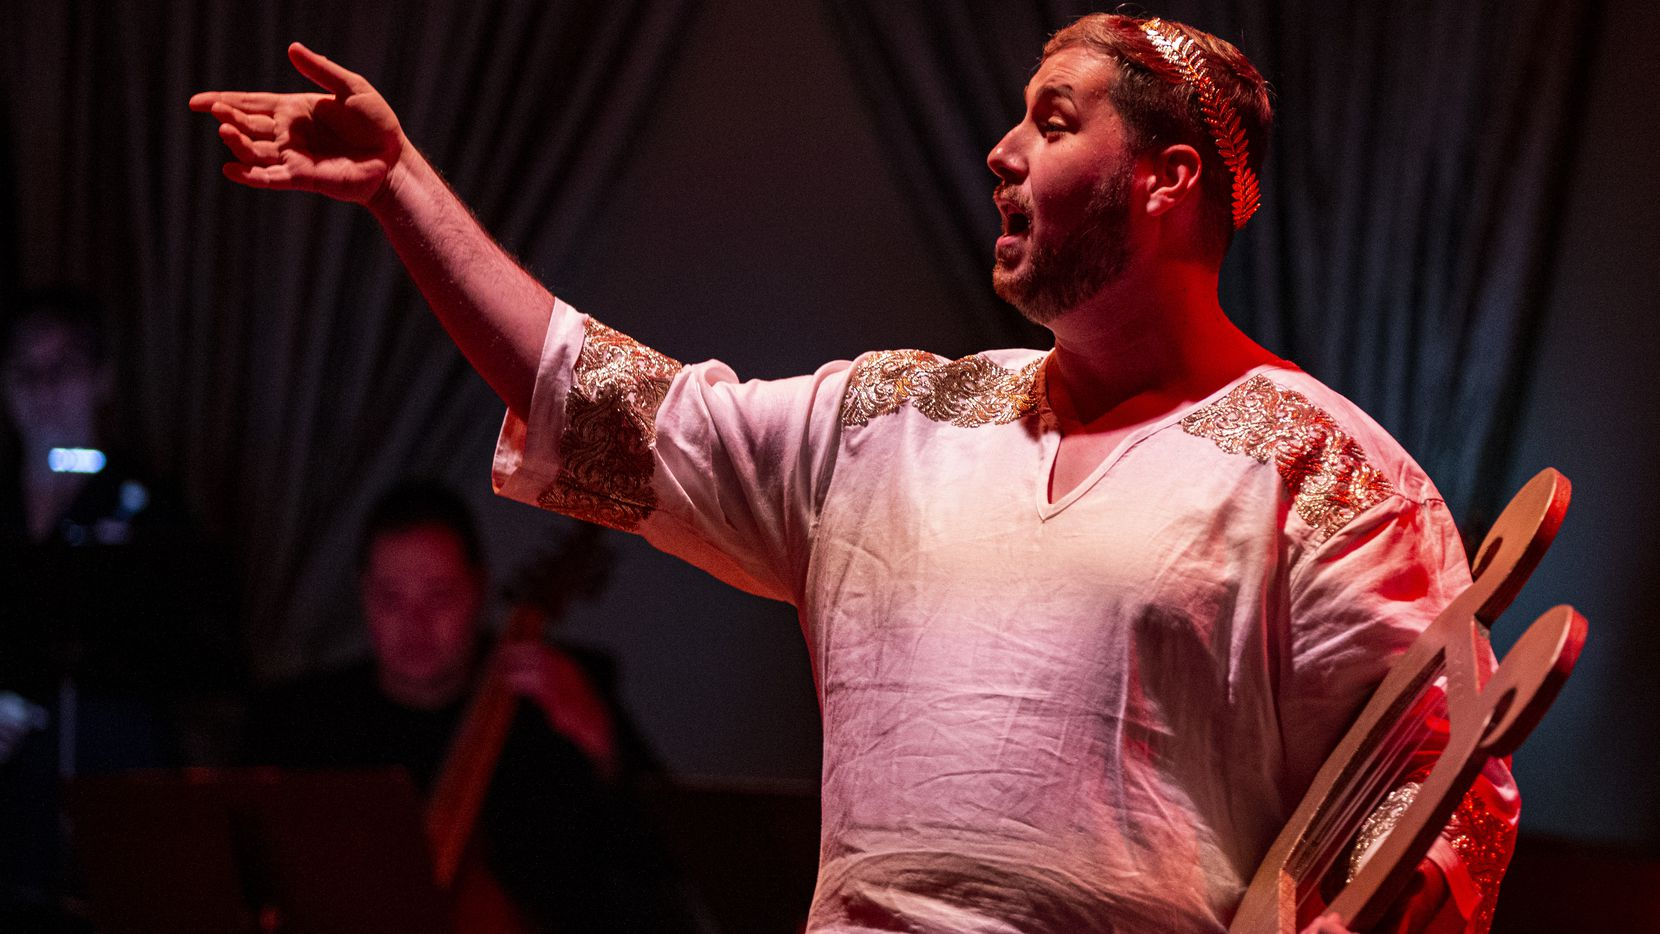 """Nicholas Garza performs as Orphée during a dress rehearsal of American Baroque Opera Co.   production of Marc-Antoine Charpentier's opera """"La descent d'Orphée aux enfers"""" at the Sammons Center for the Arts in Dallas on Oct. 31, 2019."""